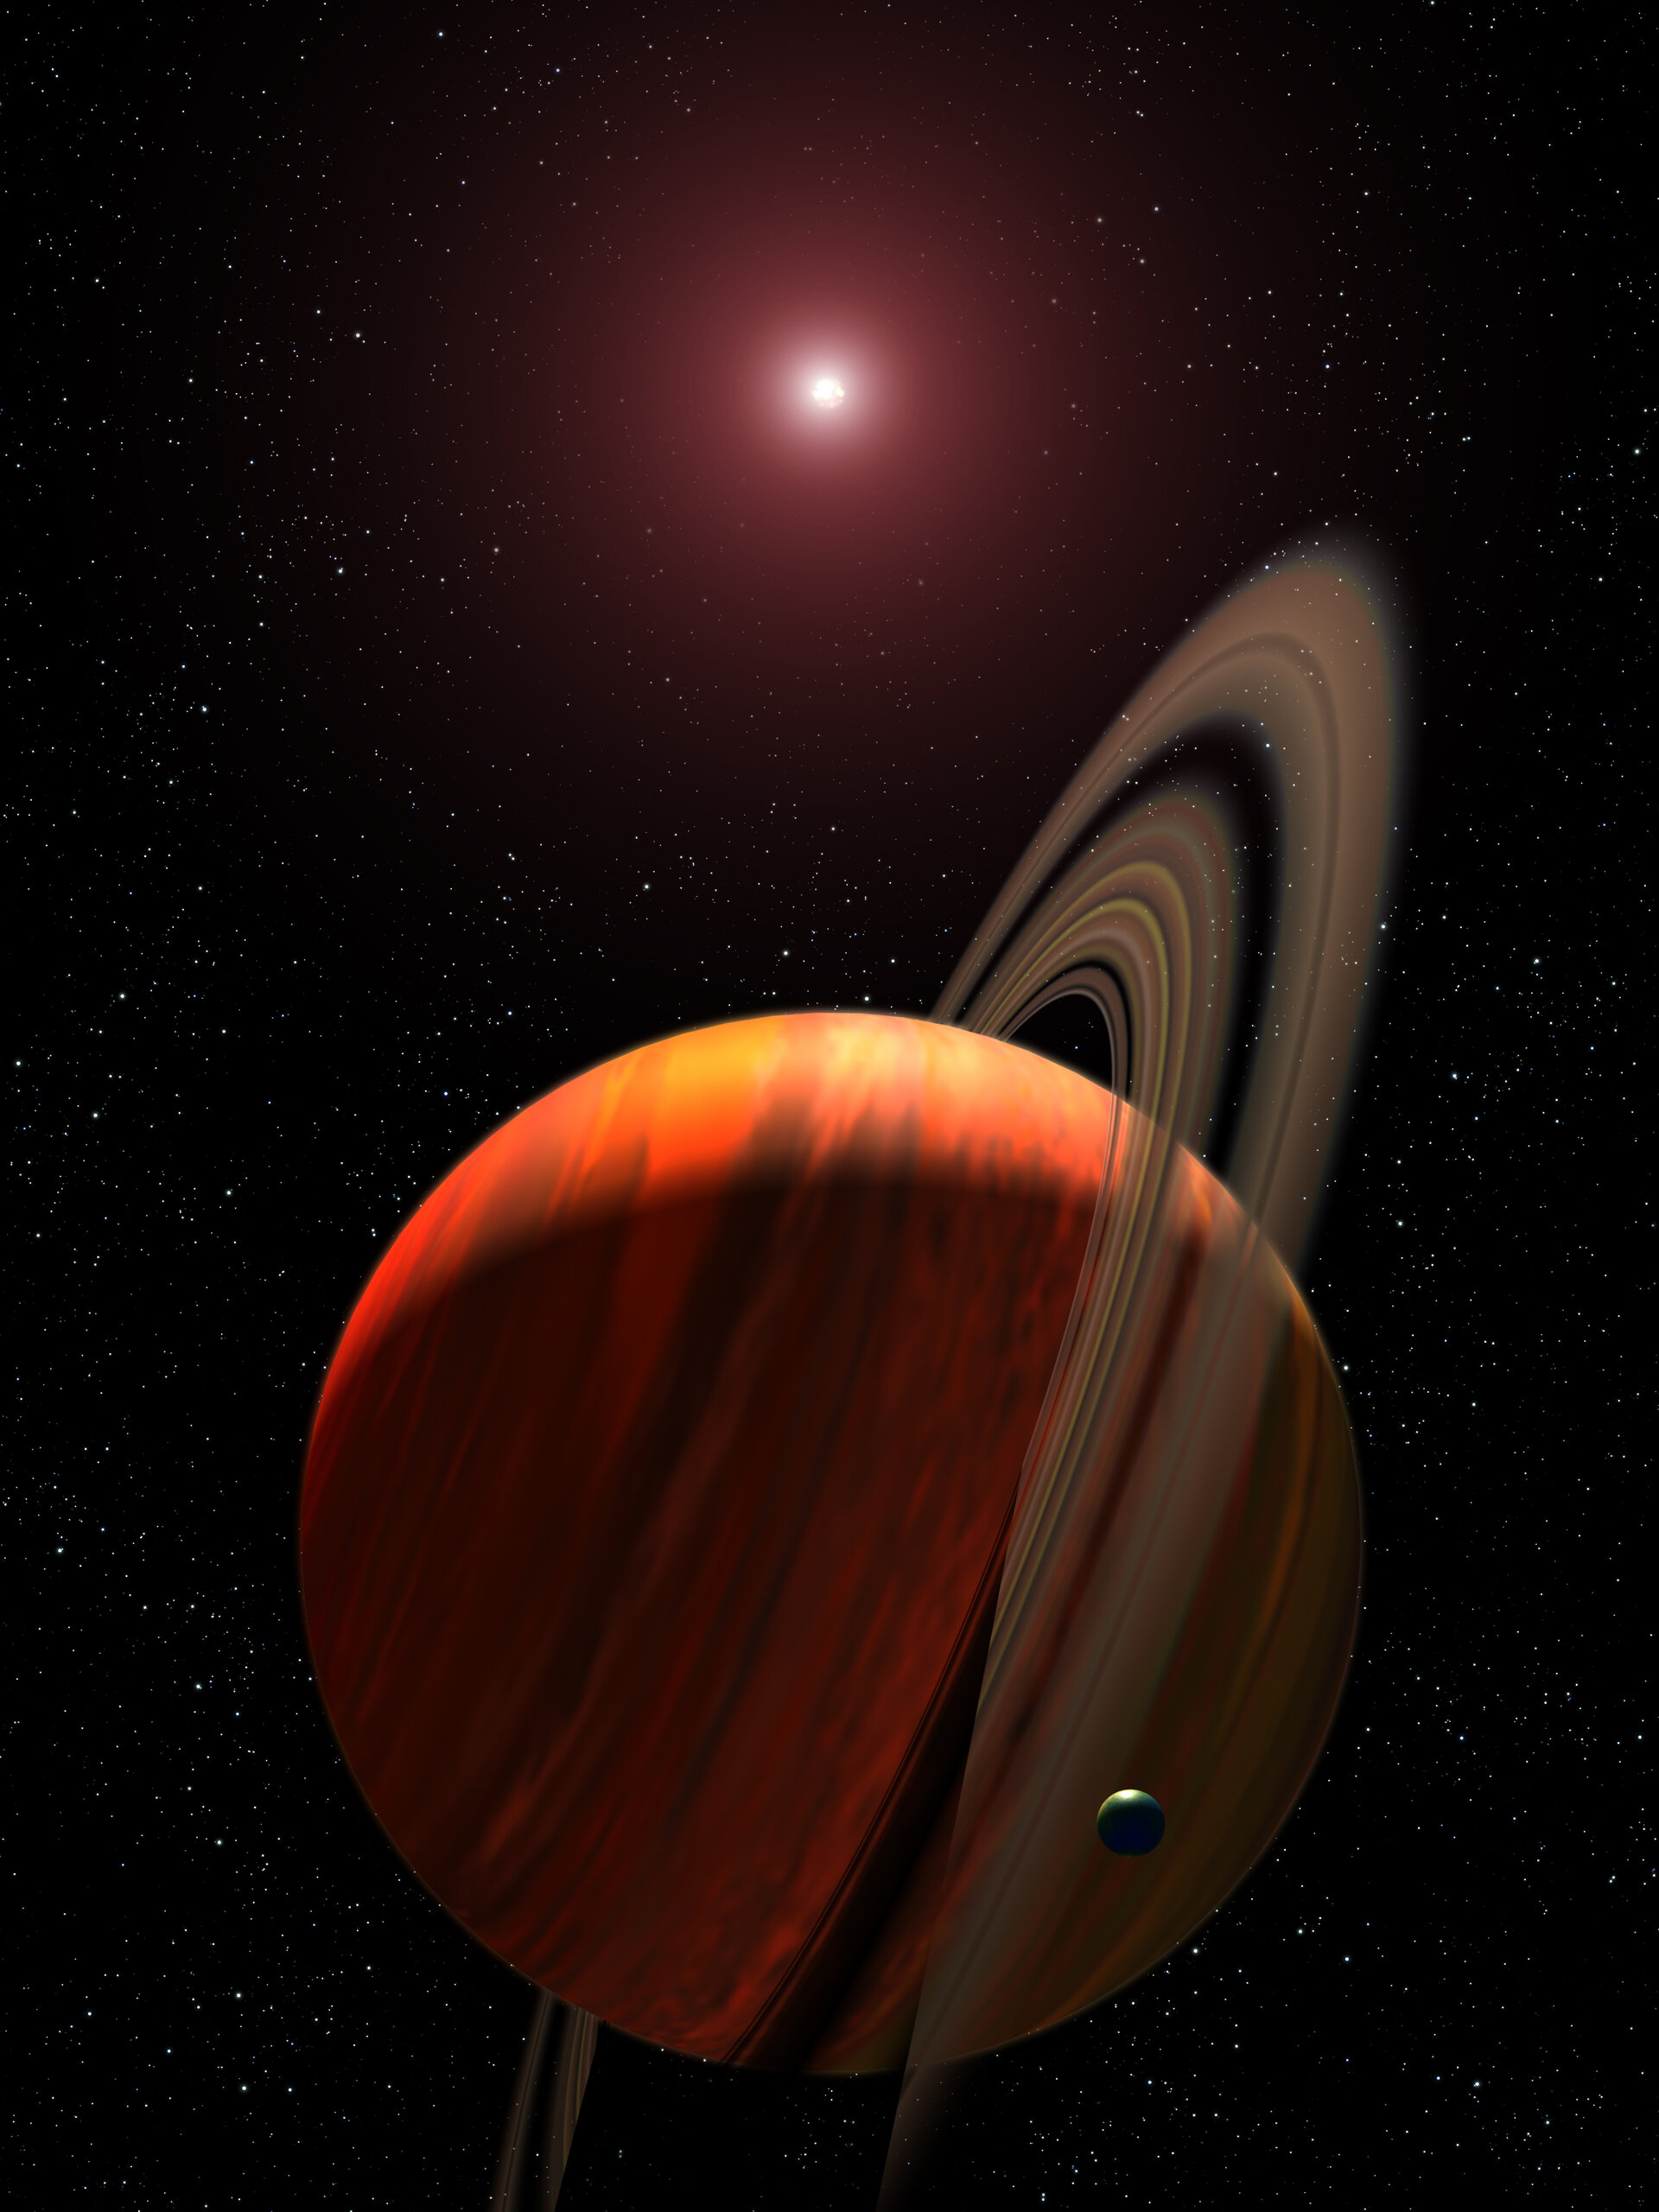 Artist's view of exoplanet around a red dwarf